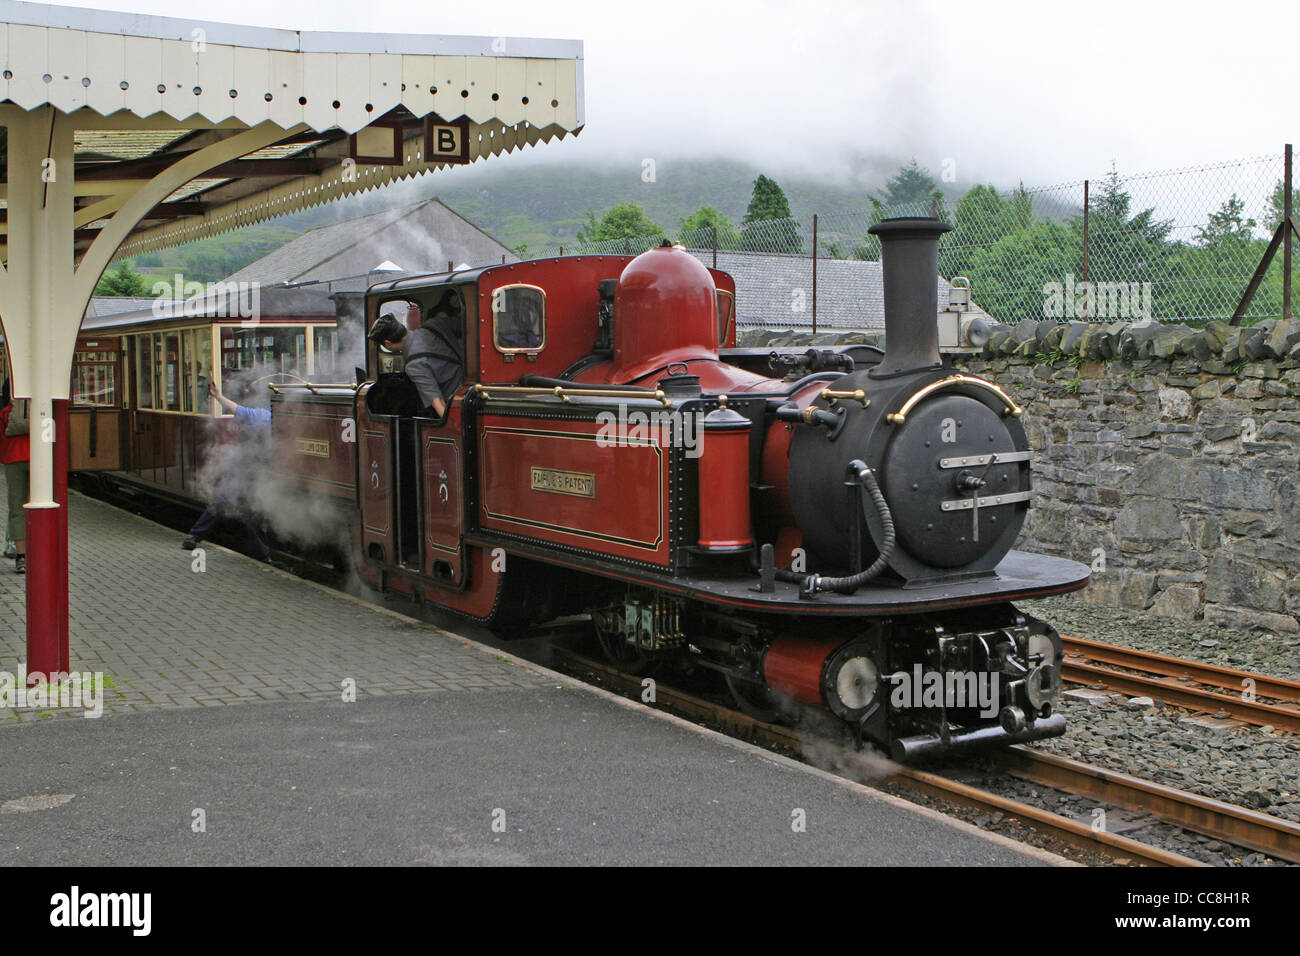 Ffestiniog Railway double-ended Fairlie locomotive David Lloyd George built in 1992 on train at Blaenau Ffestiniog - Stock Image